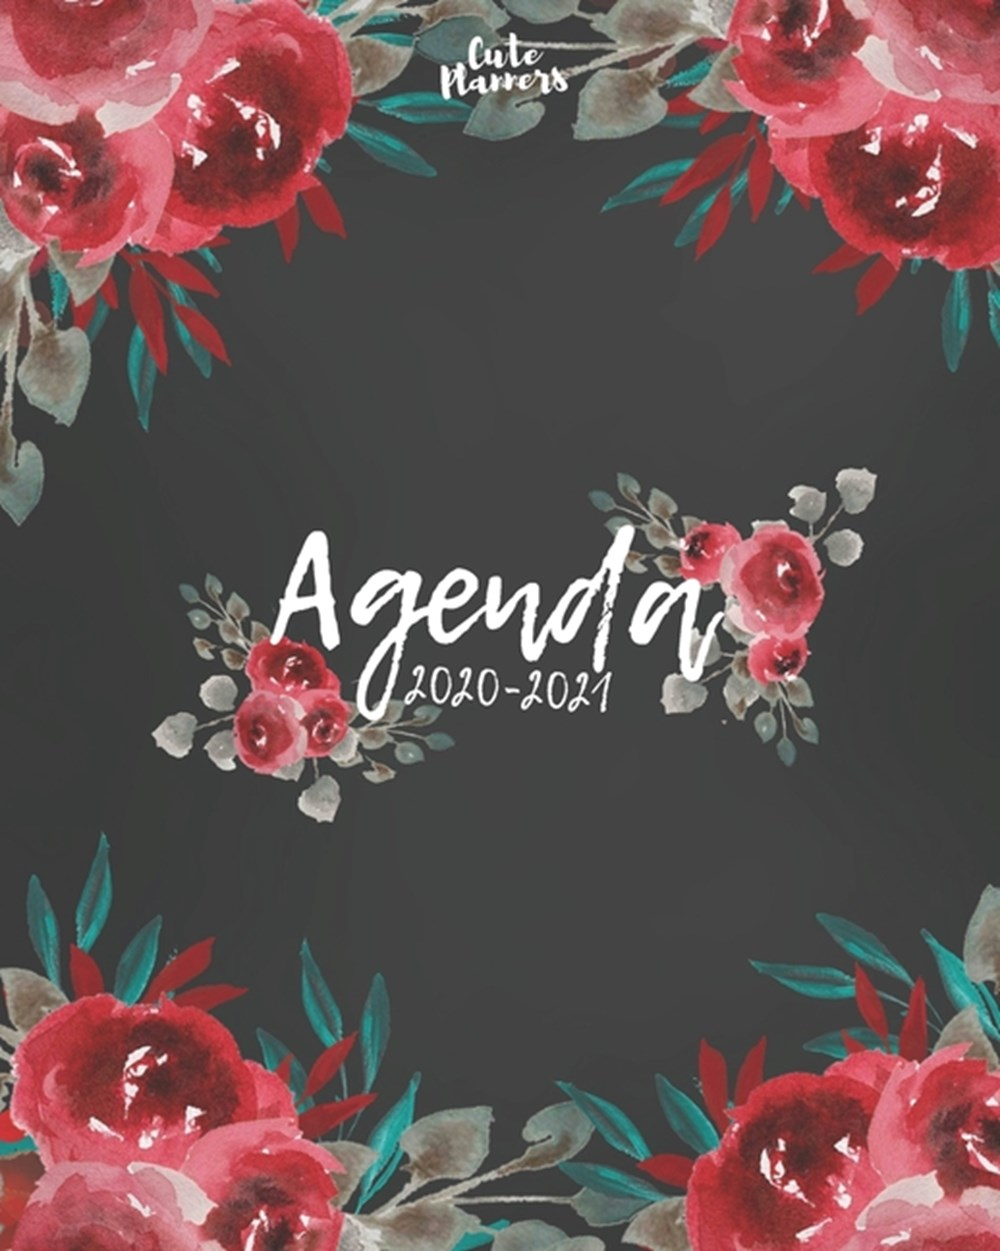 Agenda 2020-2021 Agenda 2020 -2021: Cute Planners / Black & Red roses floral Two Year Daily Weekly p